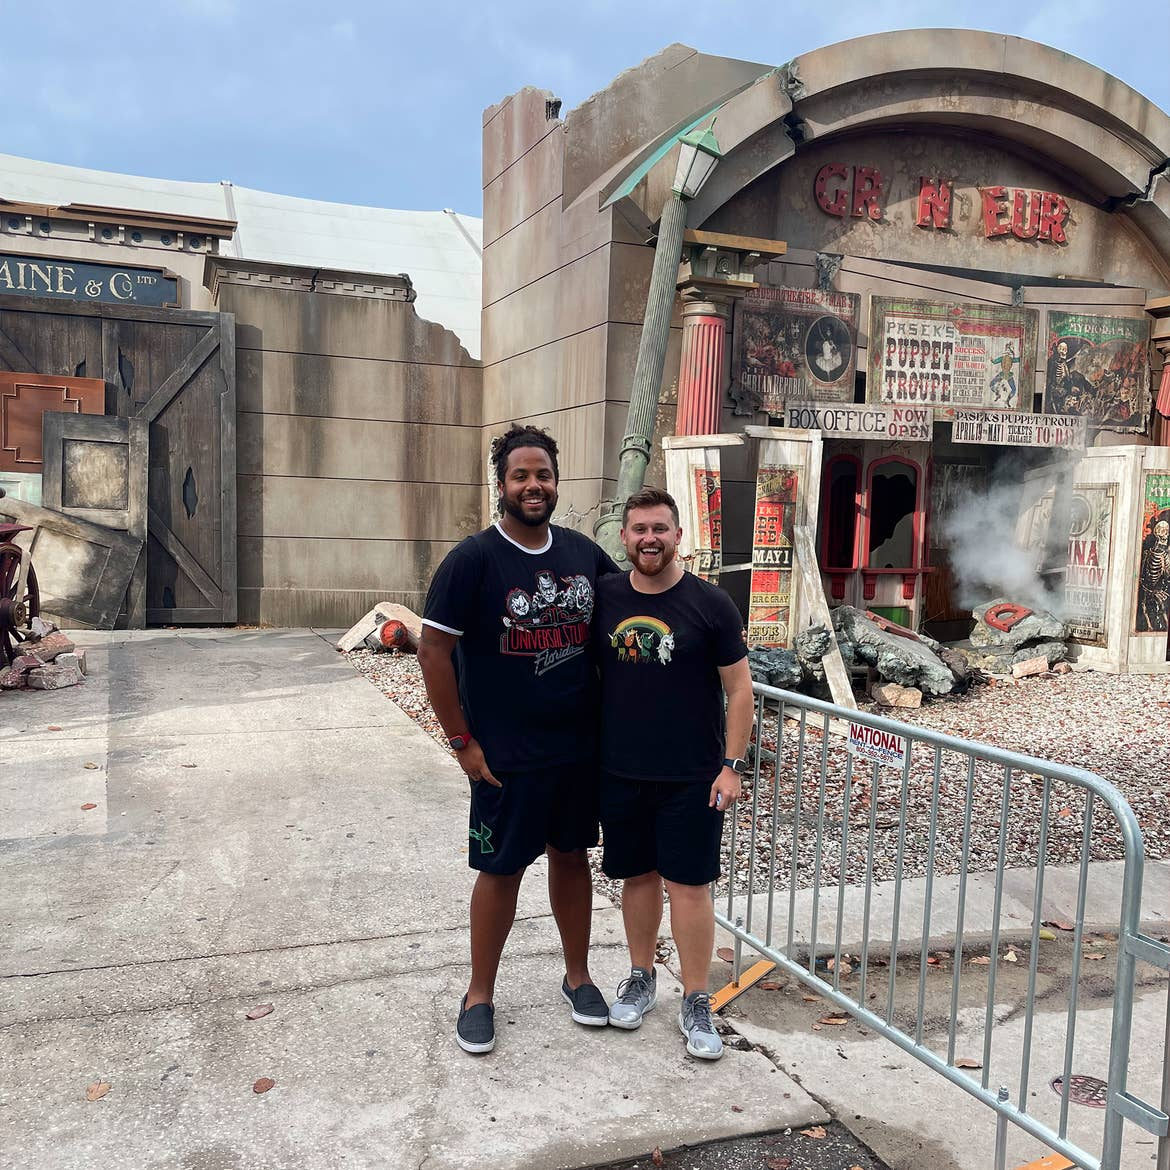 Two men wearing black t-shirts and shorts stand in front of a haunted house.